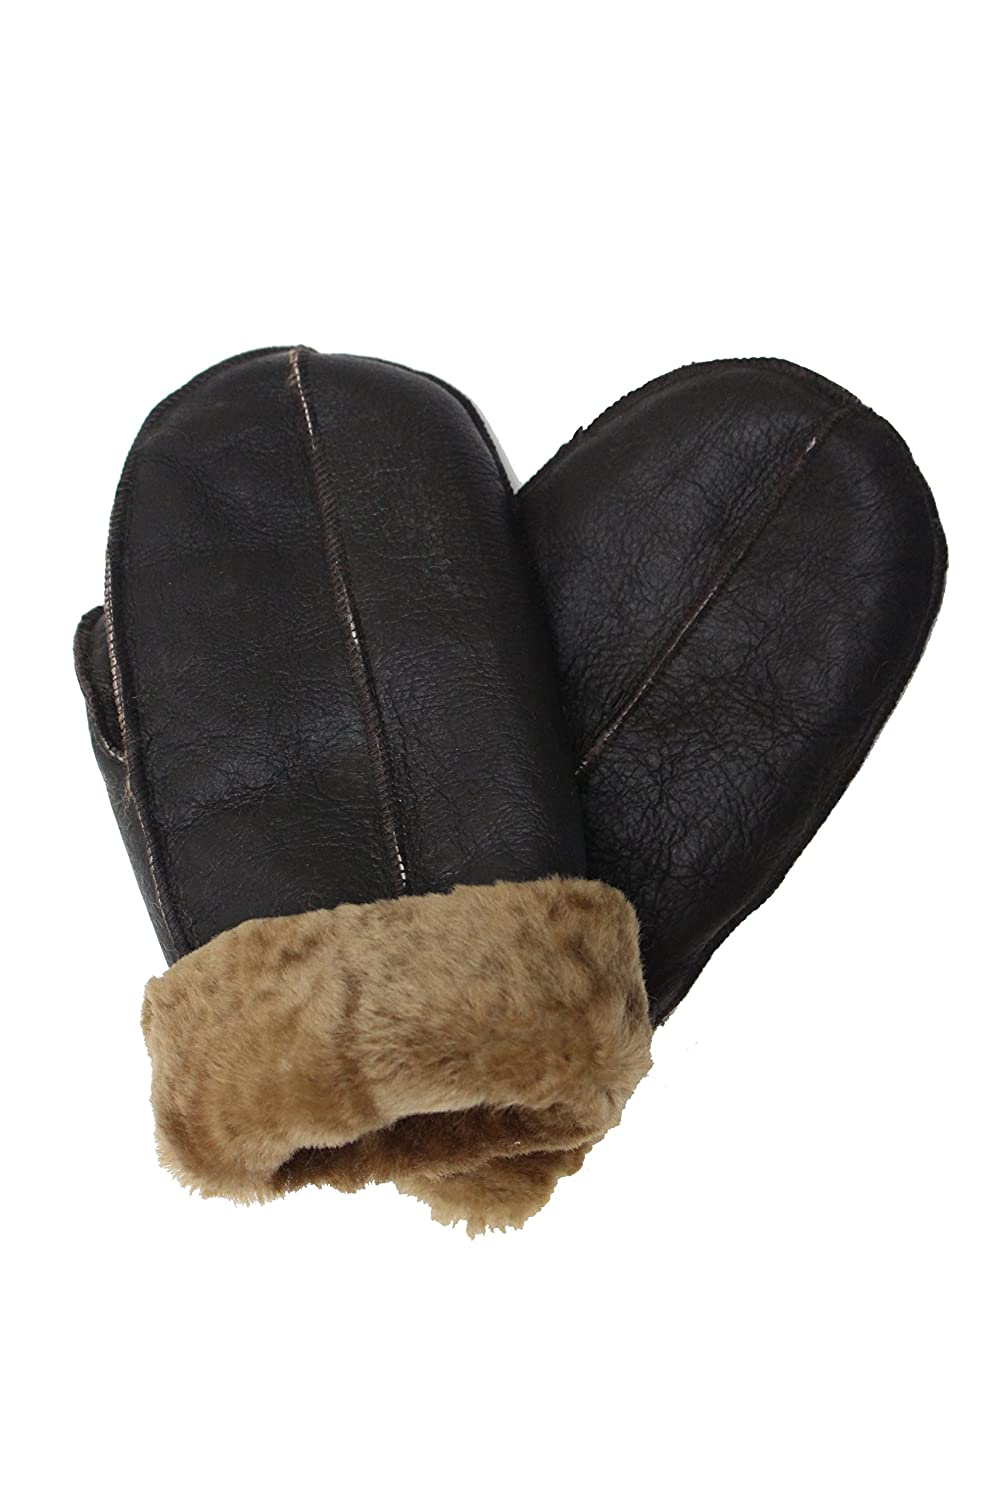 A to Z Leather - Guantes - para hombre marrón Dark Brown With Ginger Fur Medium